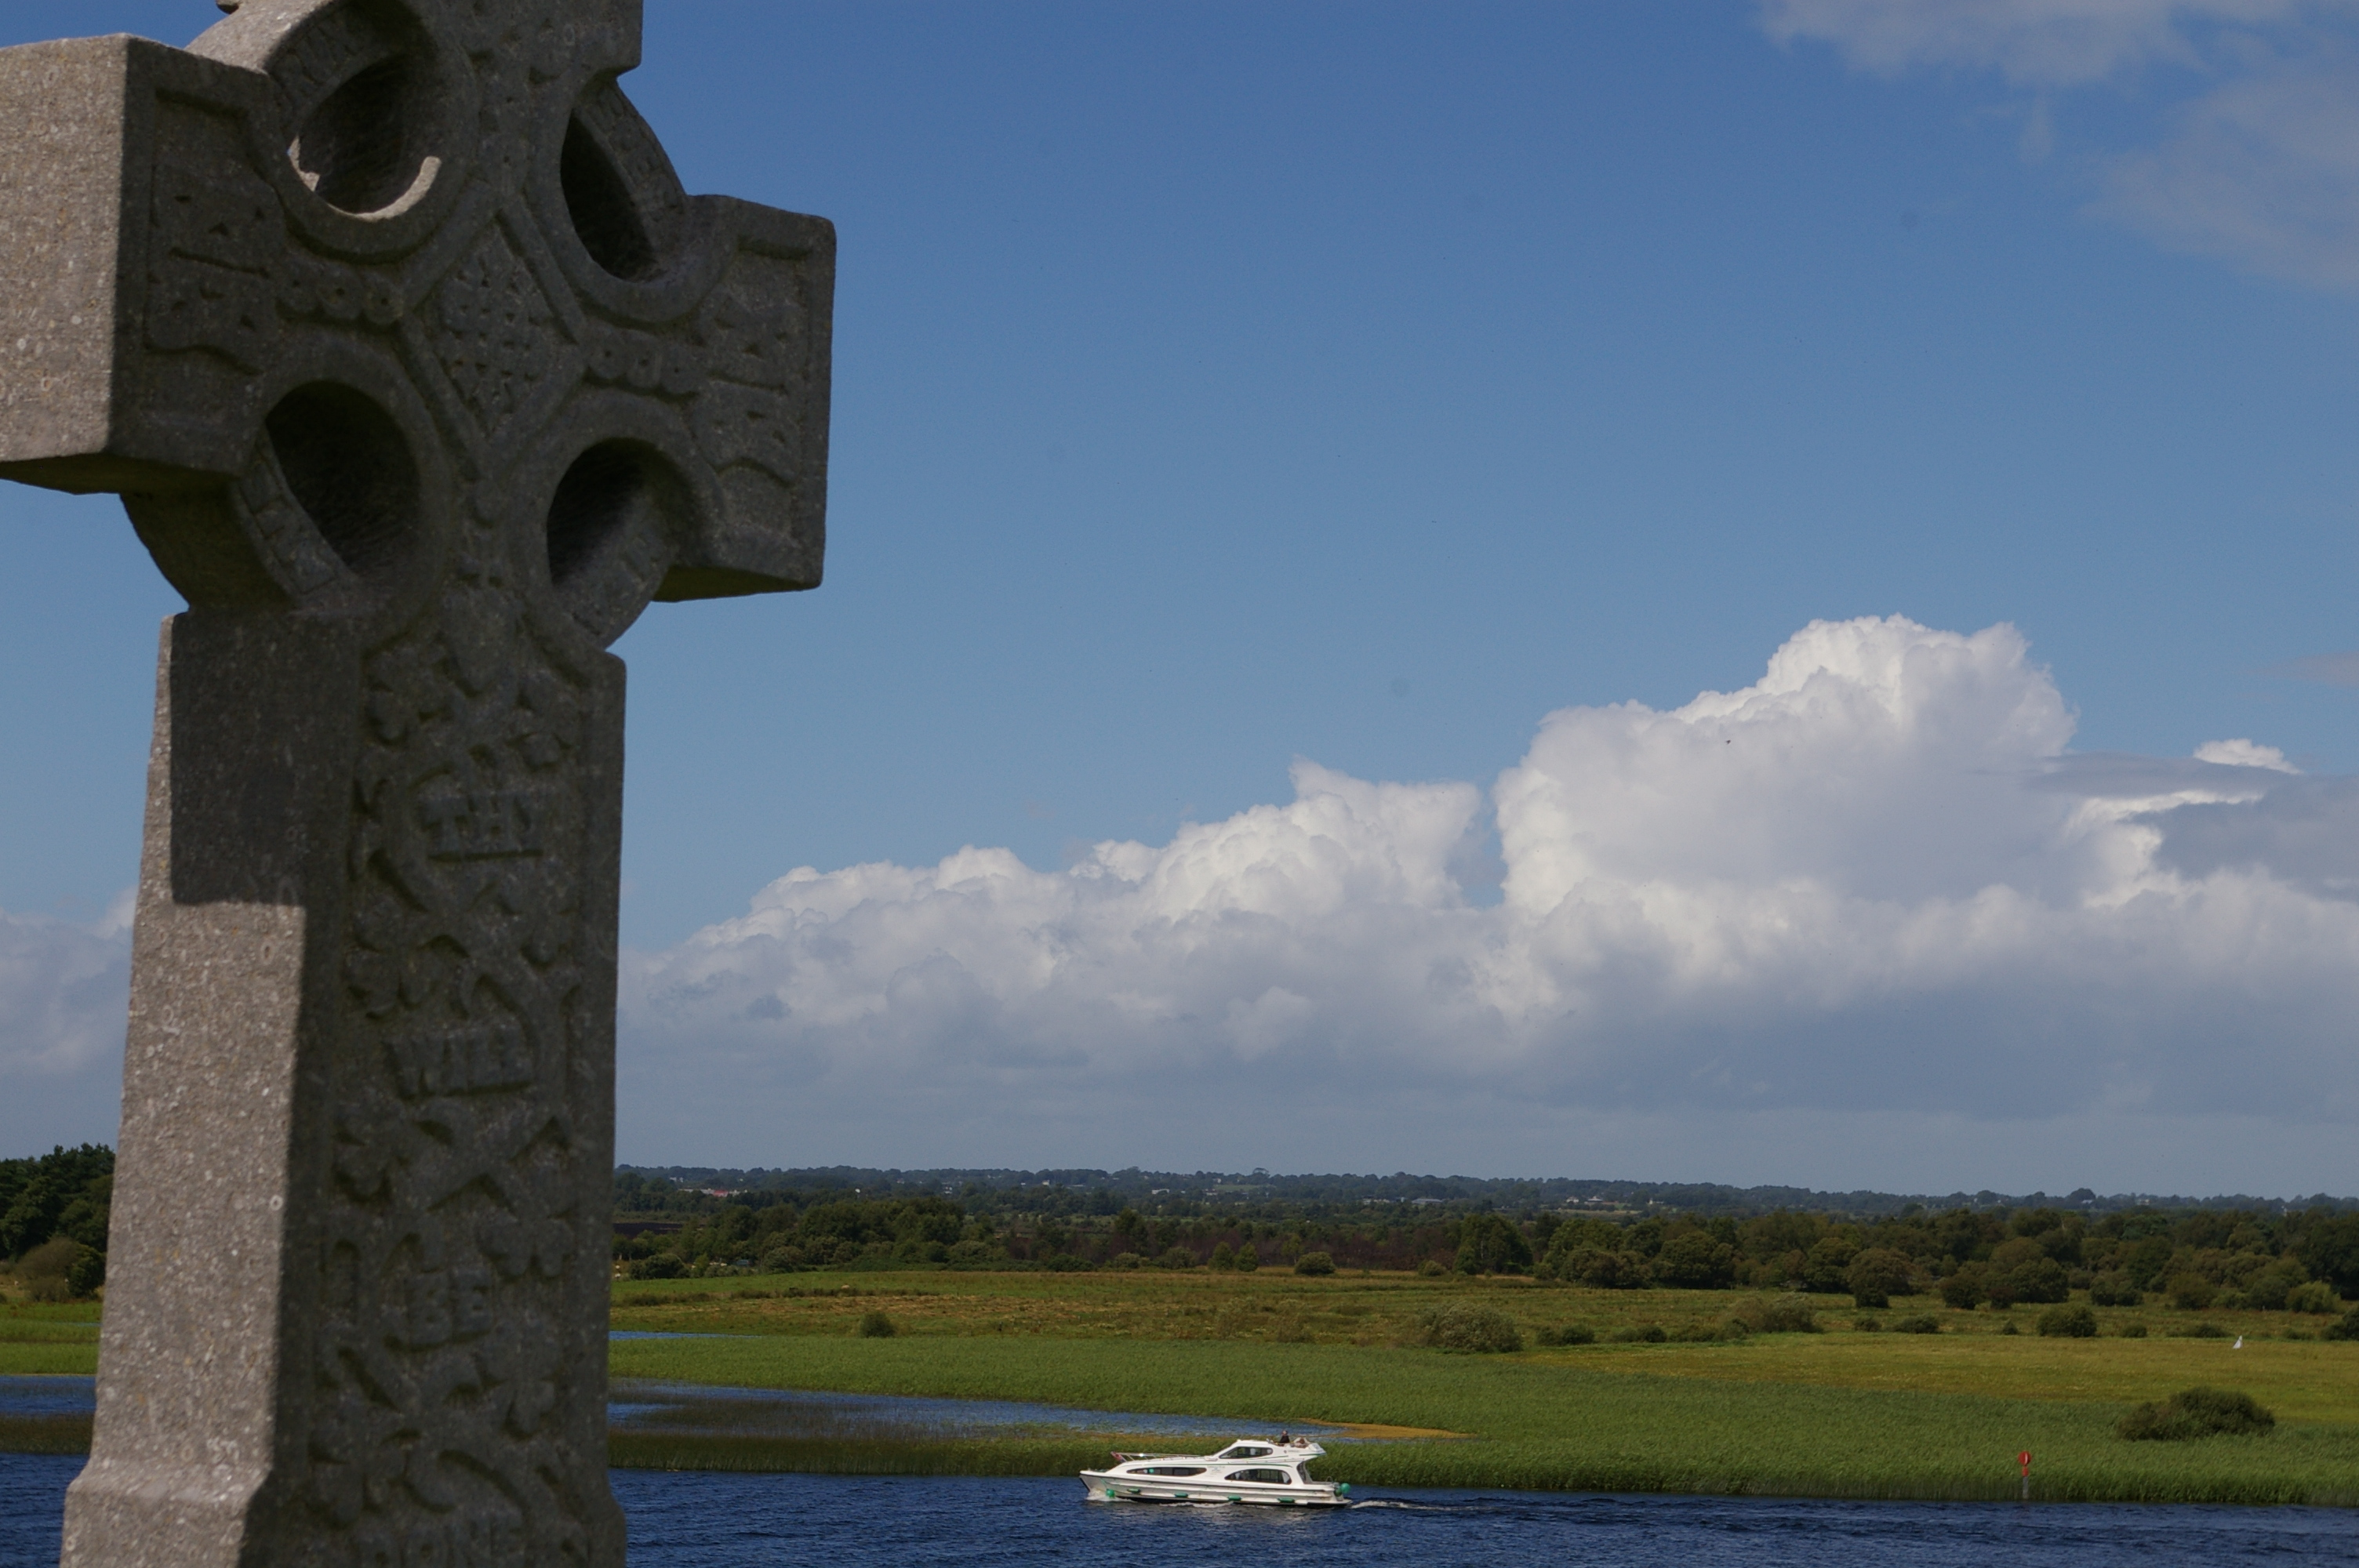 Cruising the Shannon River at Clonmacnoise